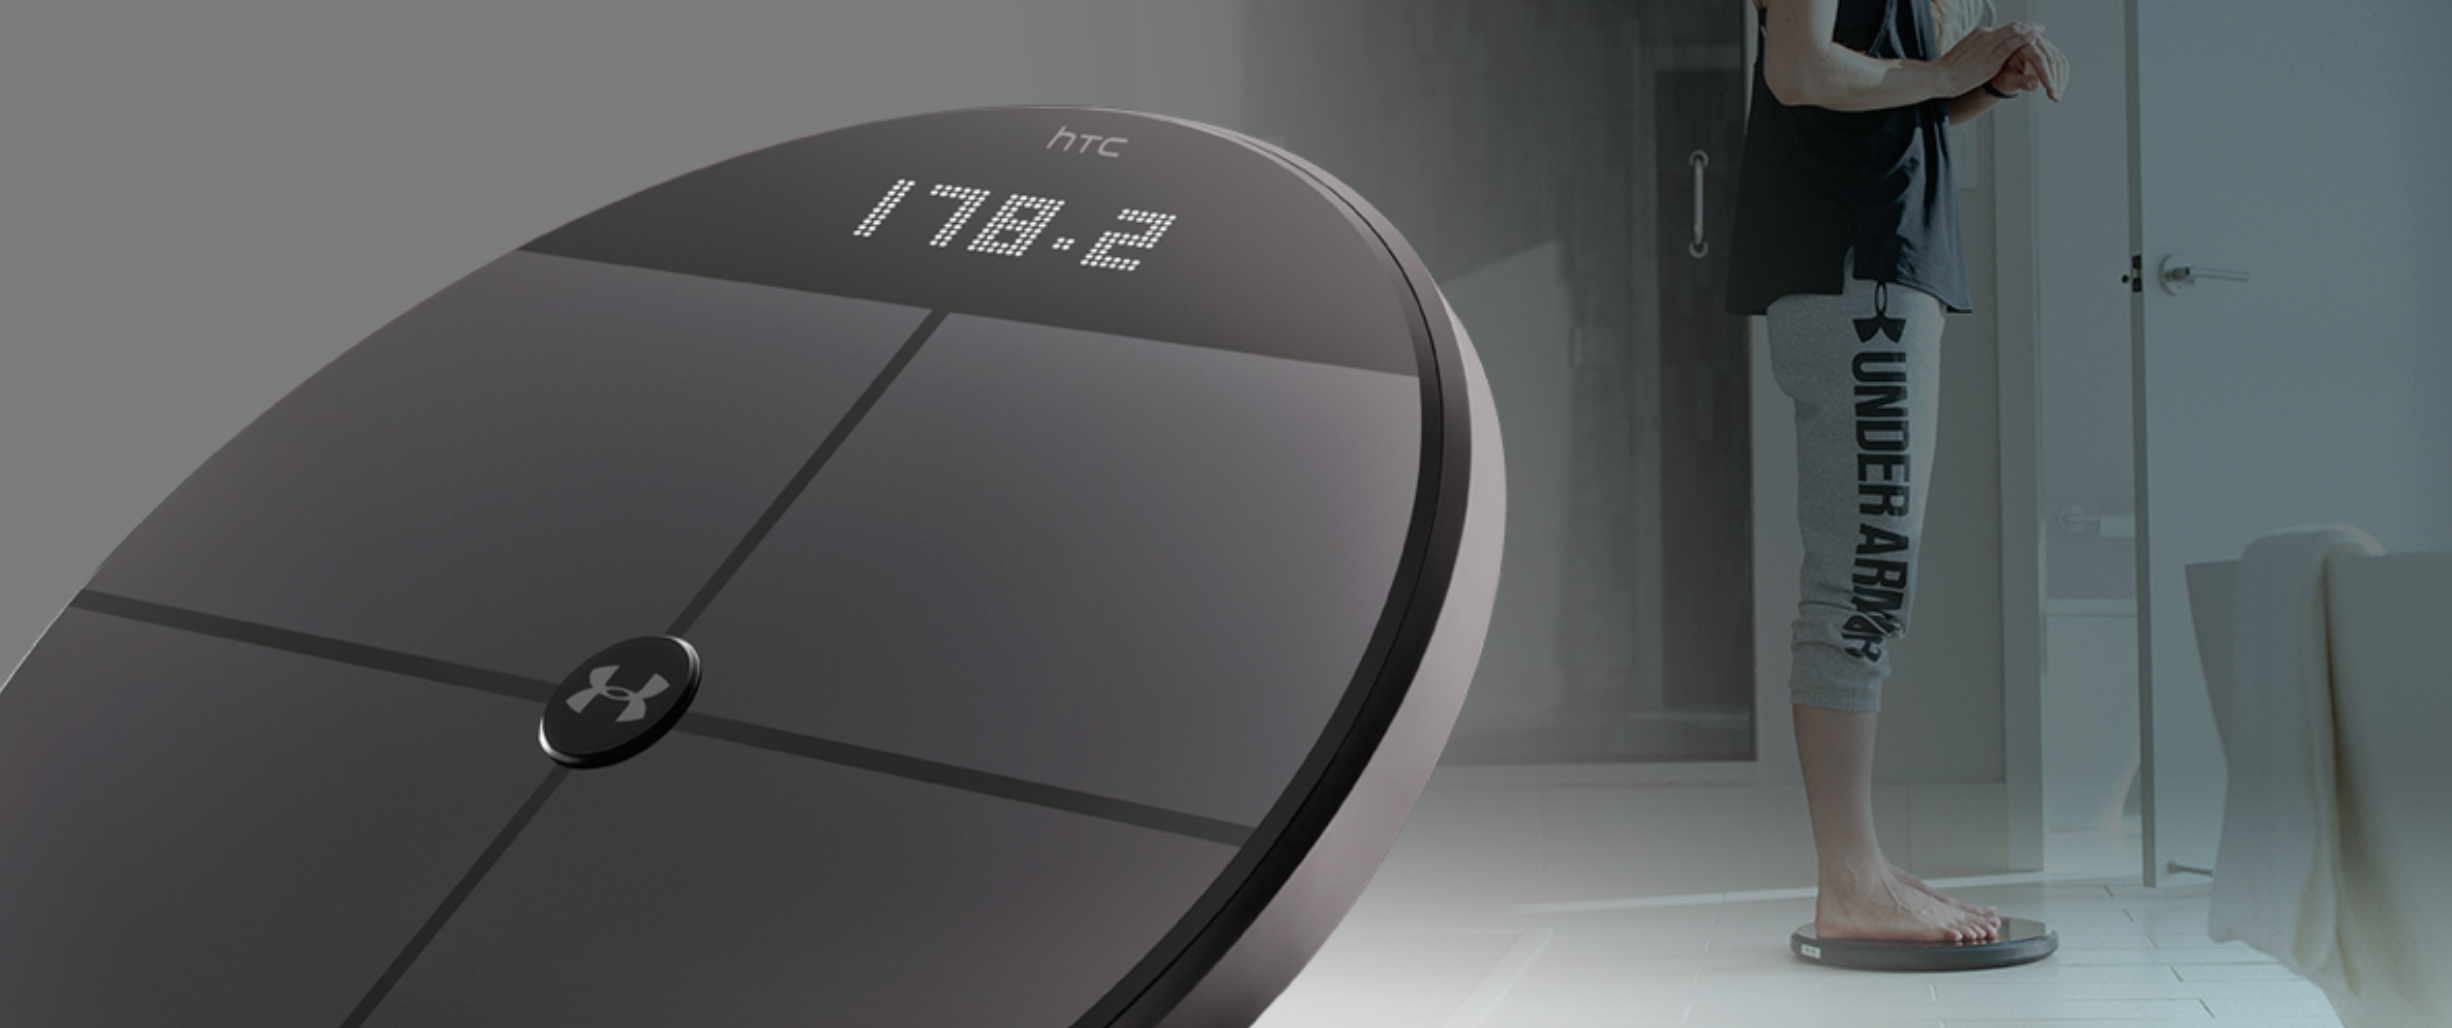 HTC and Under Armour Announced the Fitness Integrated System UA Products Portfolio